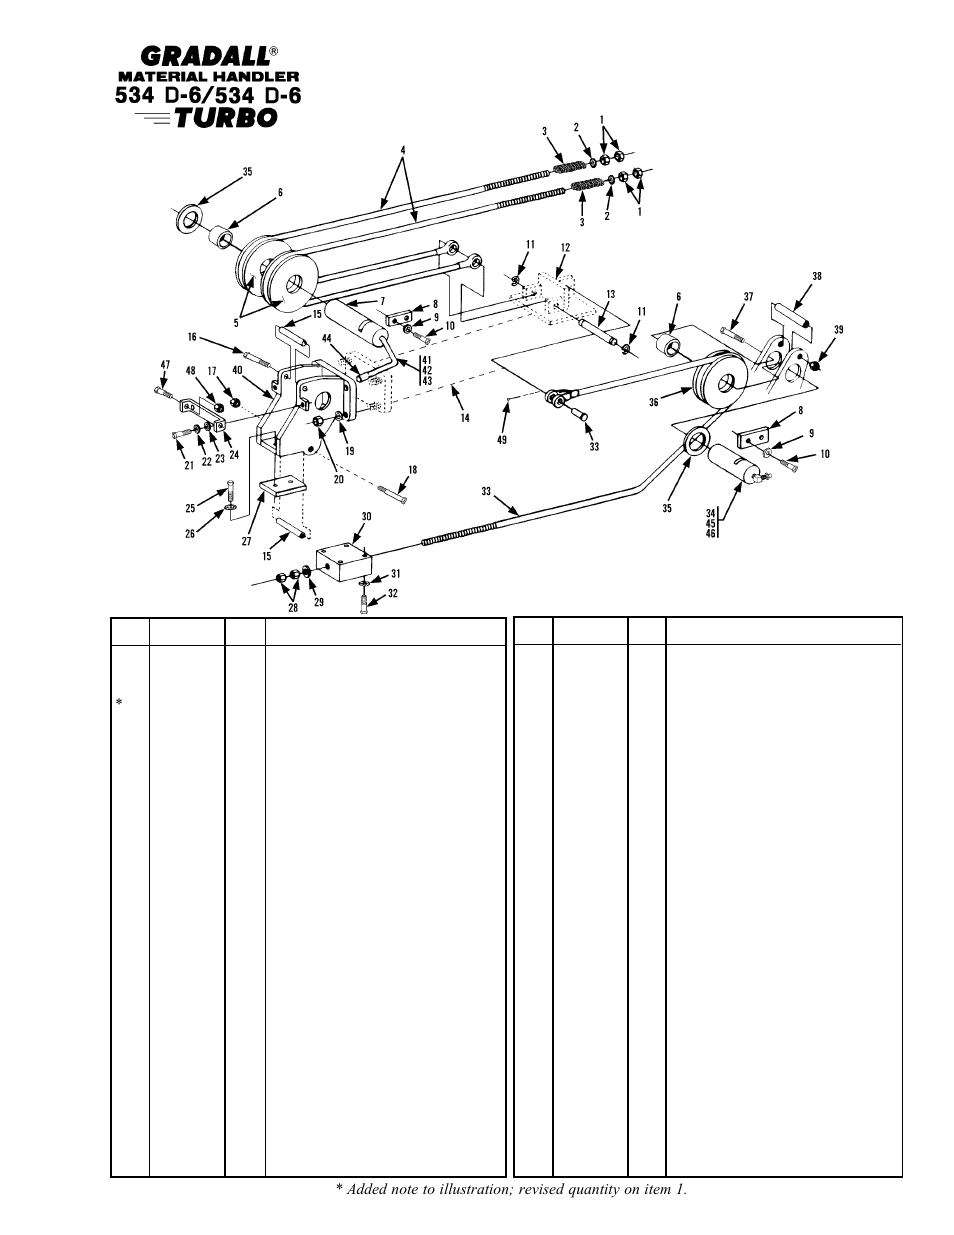 Gradall Ignition Switch Wiring Diagram Bard Electric